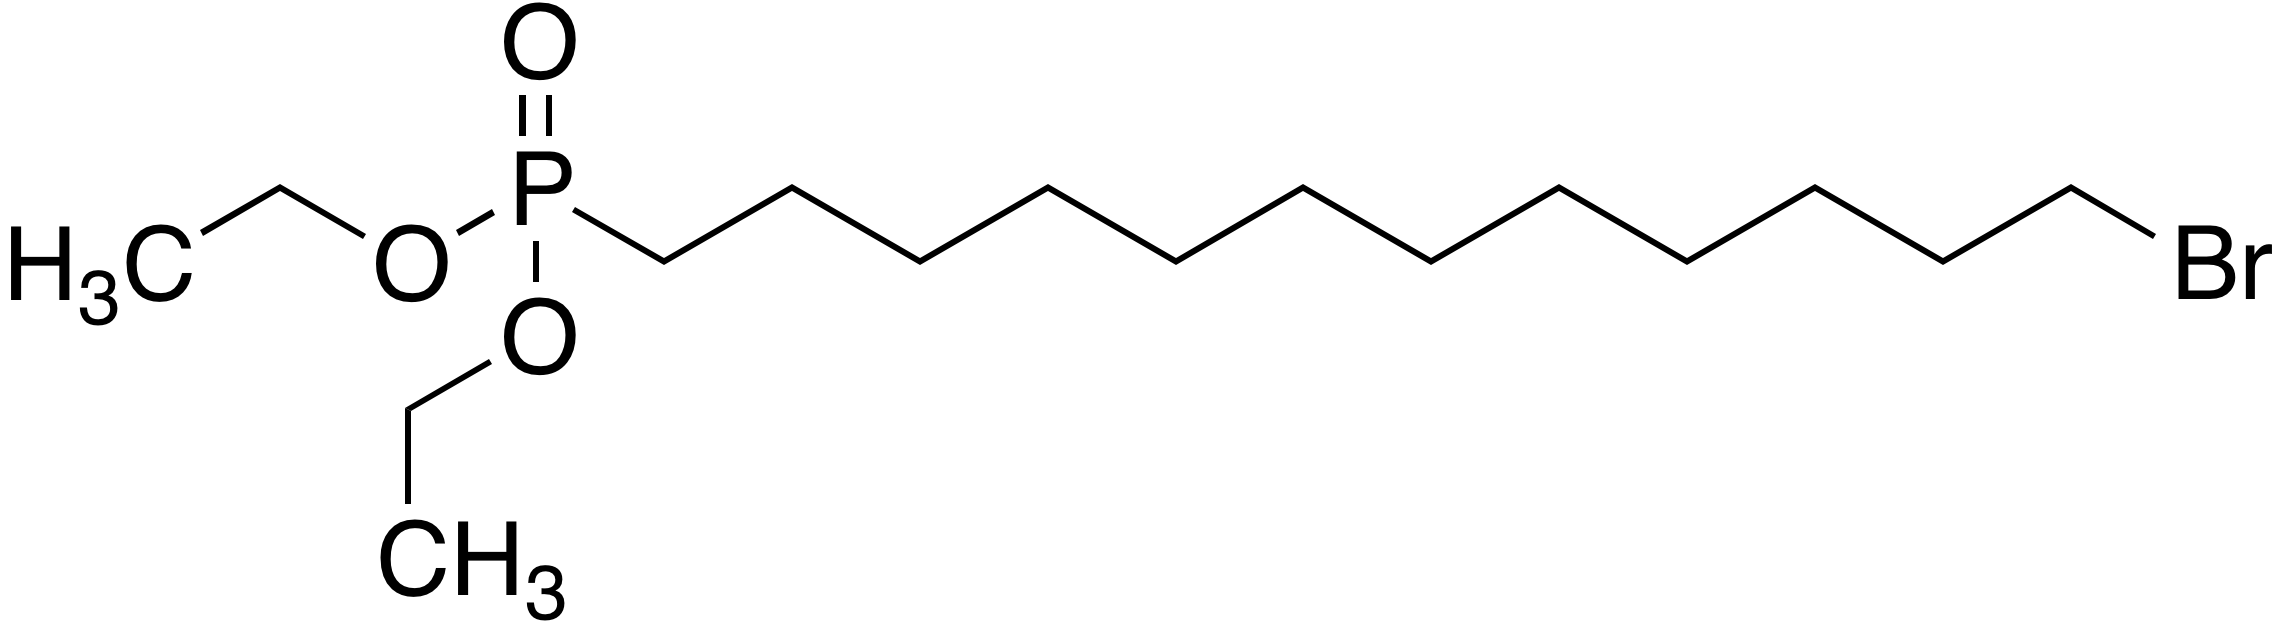 Diethyl (12-bromododecyl)phosphonate